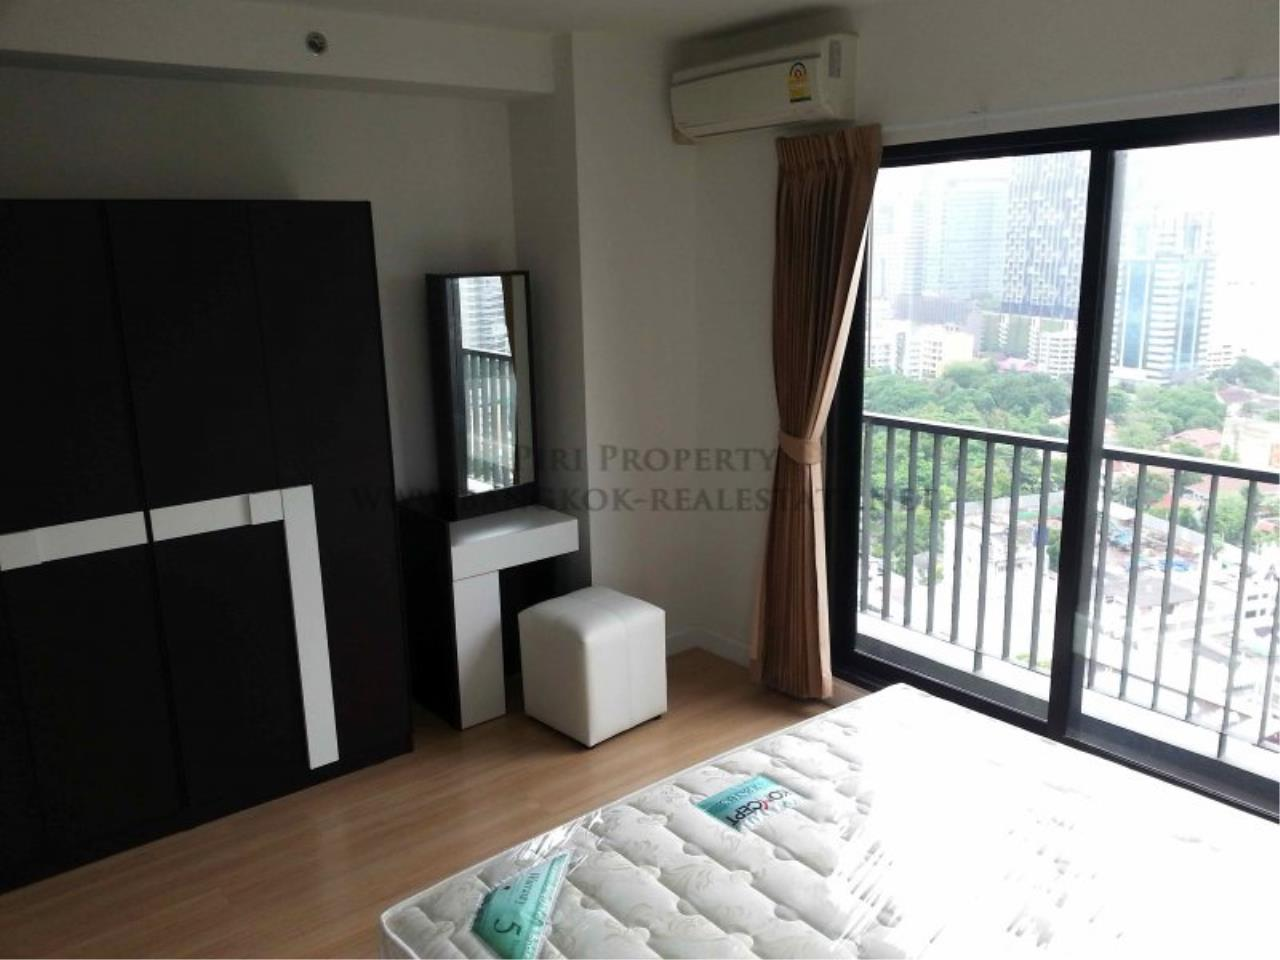 Piri Property Agency's High Floor Condo n the Seed Mingle - 2 Bedroom for Rent 3